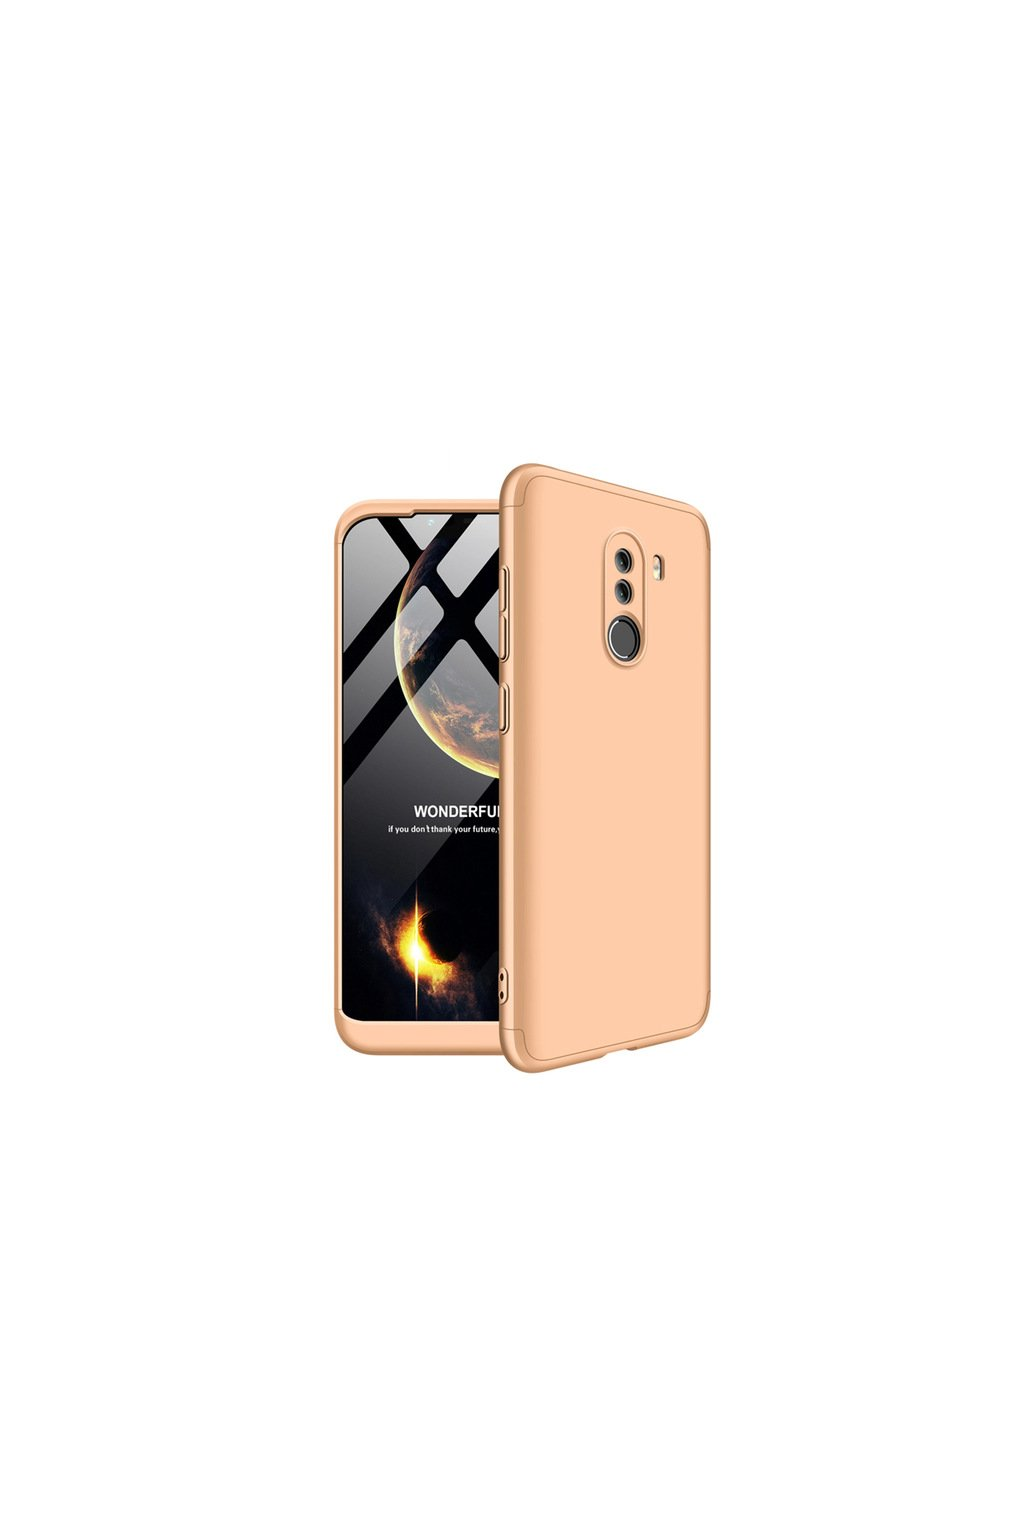 Xiaomi Pocophone F1 Case Poco F1 Cover Vpower Three In One 360 Full Protector Cases for.jpg 640x640